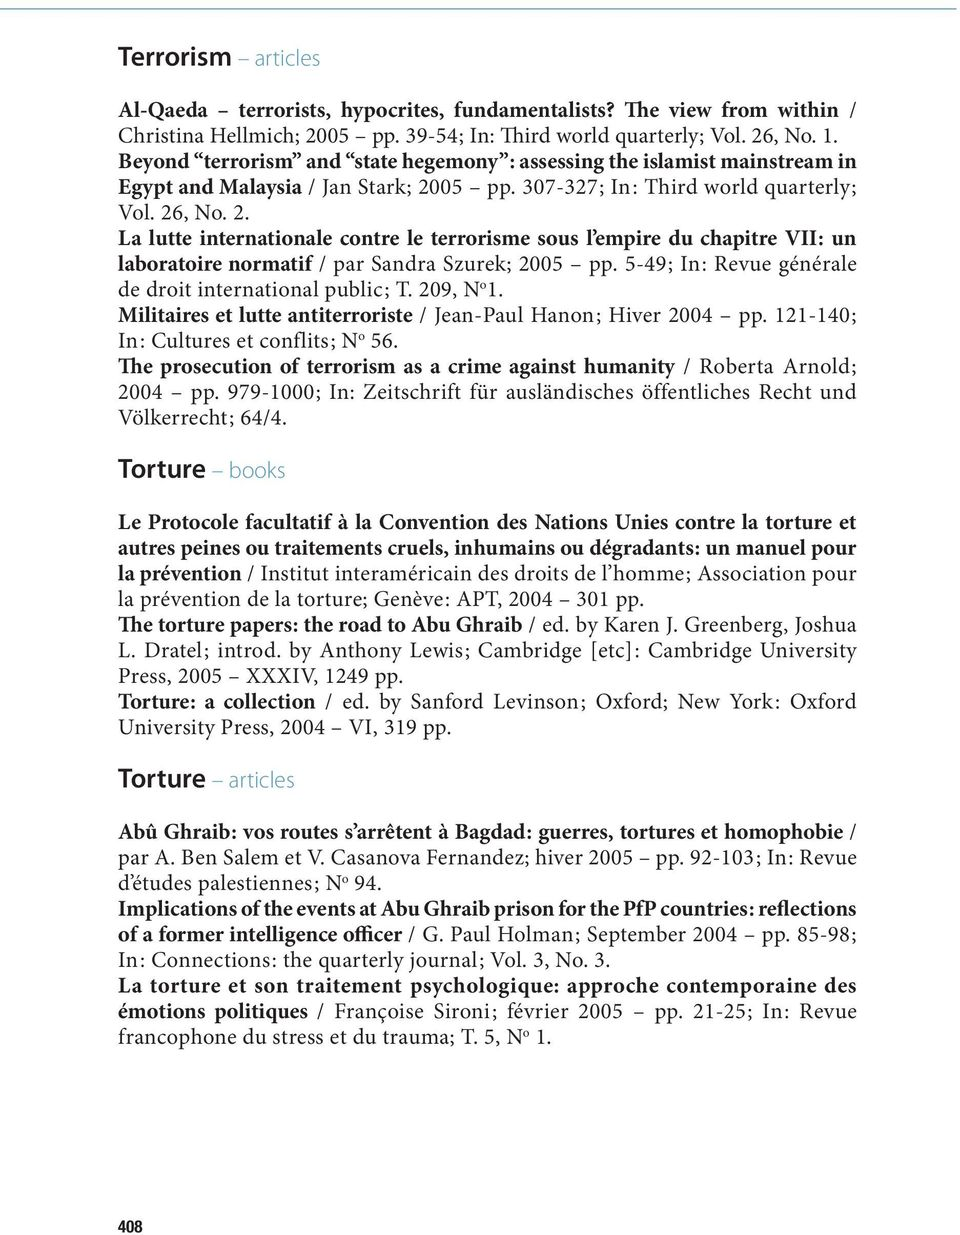 05 pp. 307-327 ; In : Third world quarterly ; Vol. 26, No. 2. La lutte internationale contre le terrorisme sous l empire du chapitre VII : un laboratoire normatif / par Sandra Szurek; 2005 pp.